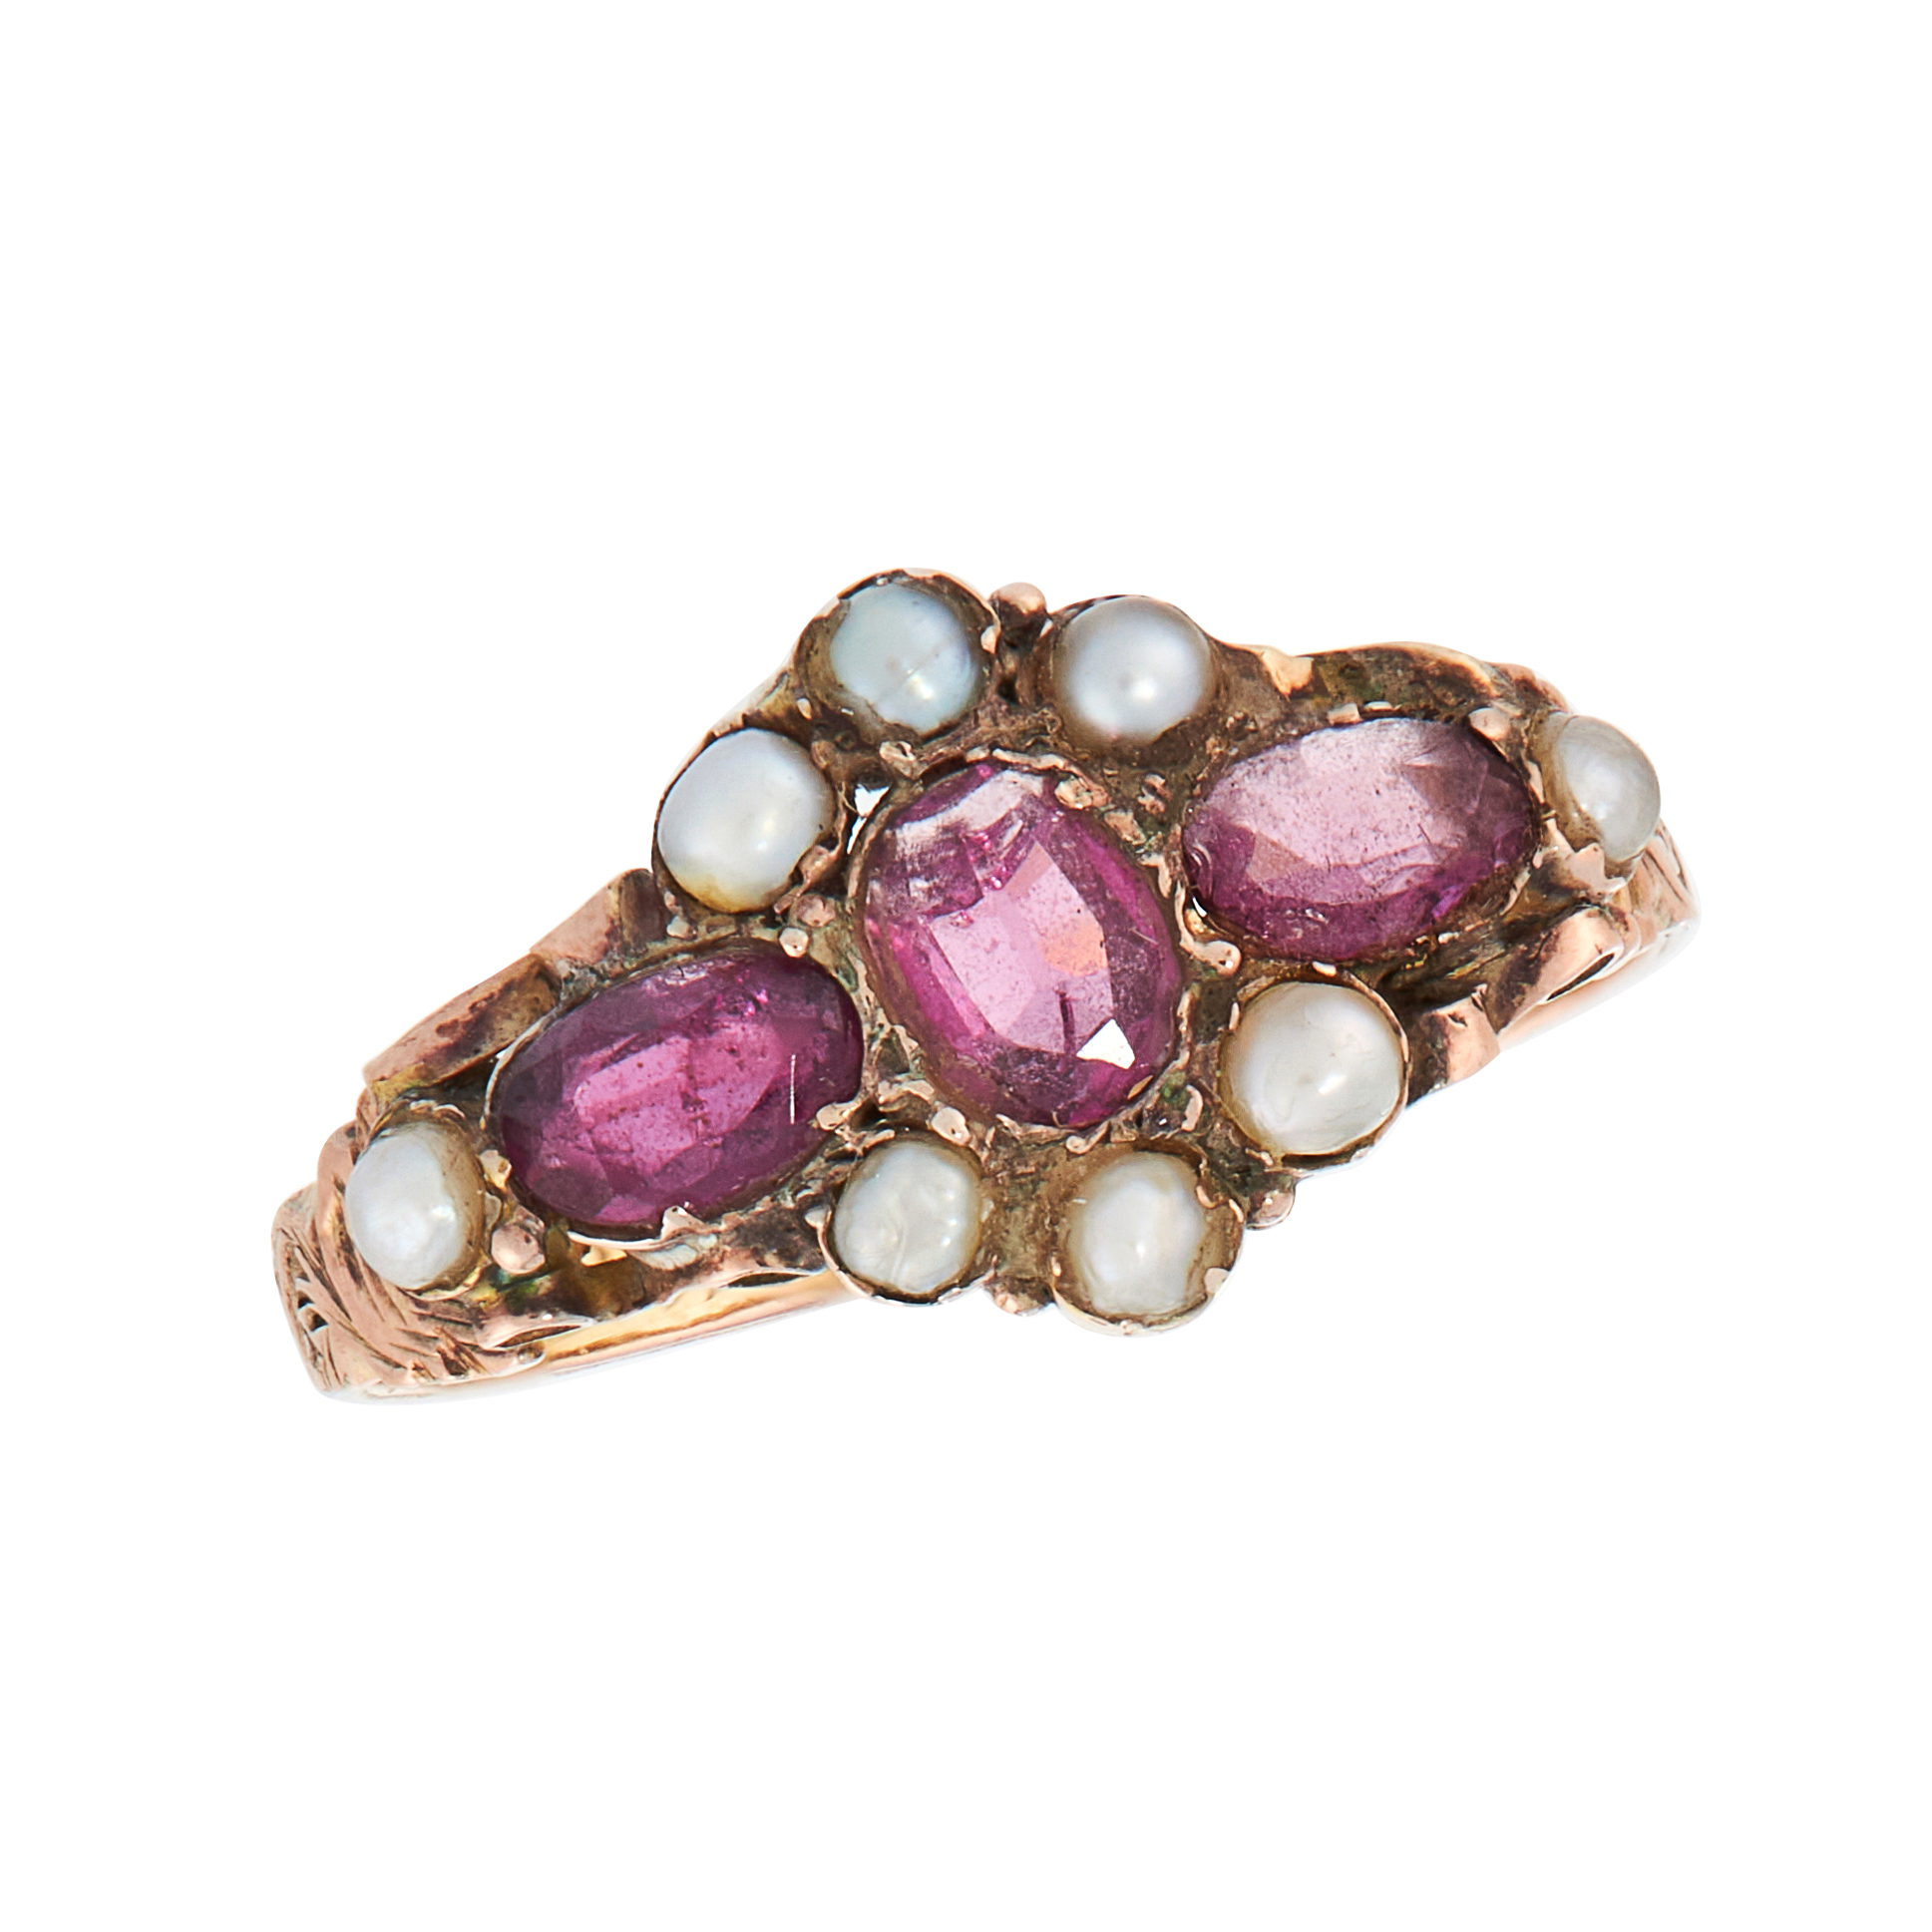 AN ANTIQUE GARNET AND PEARL DRESS RING in 12ct yellow gold, set with a trio of oval cut garnets